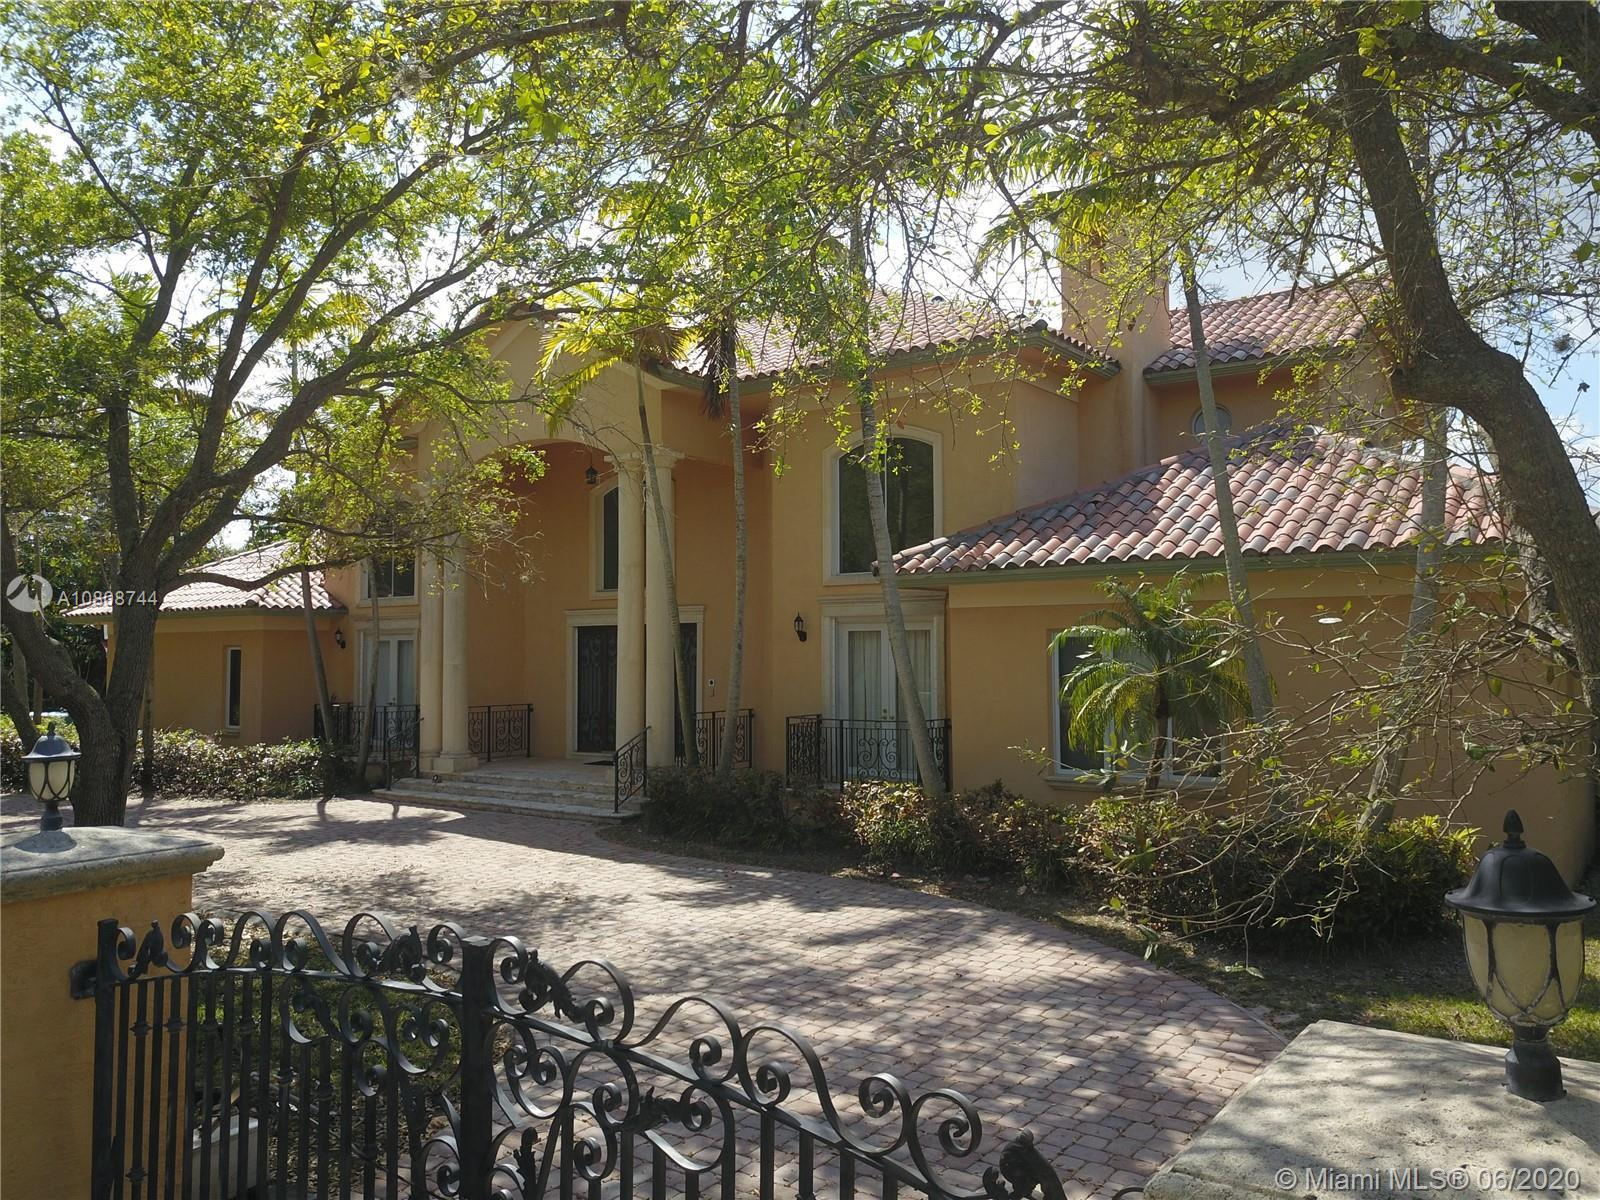 Waiting for your personal touches is this exquisite Pinecrest two story Mediterranean Estate. Walled